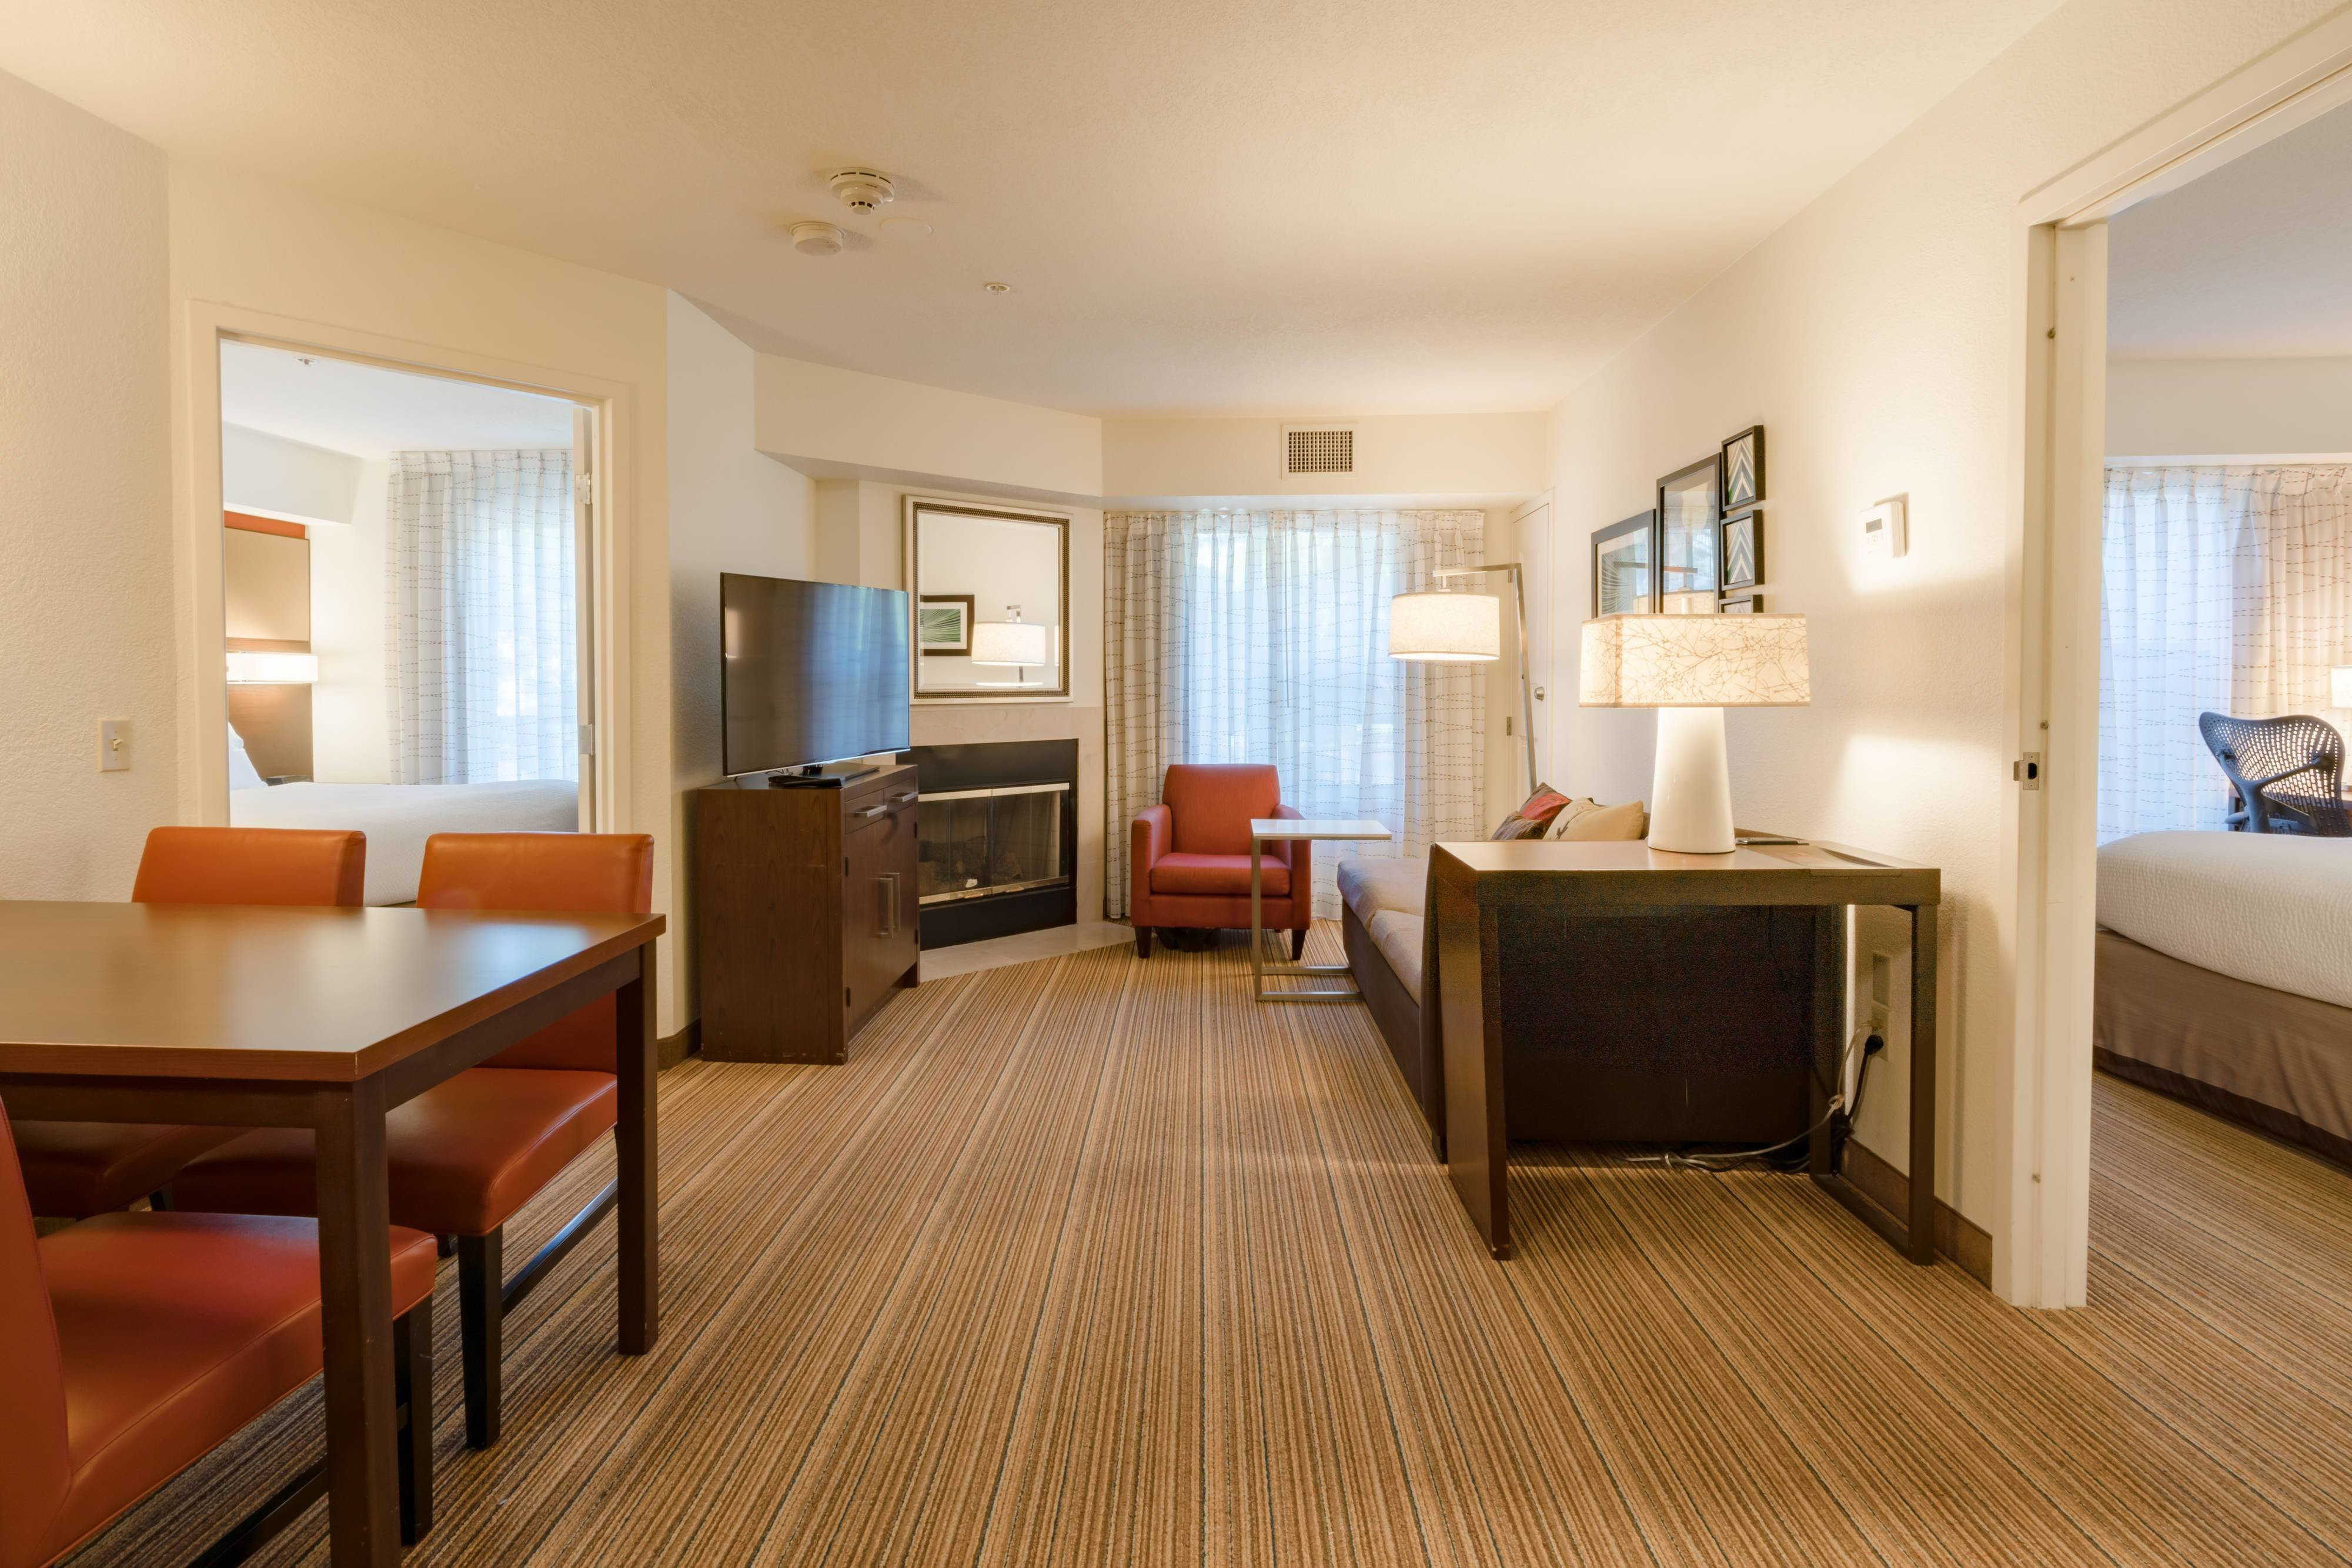 Best Hotels In Carlsbad Residence Inn Marriott Carlsbad Hotel By Legoland California With Pictures